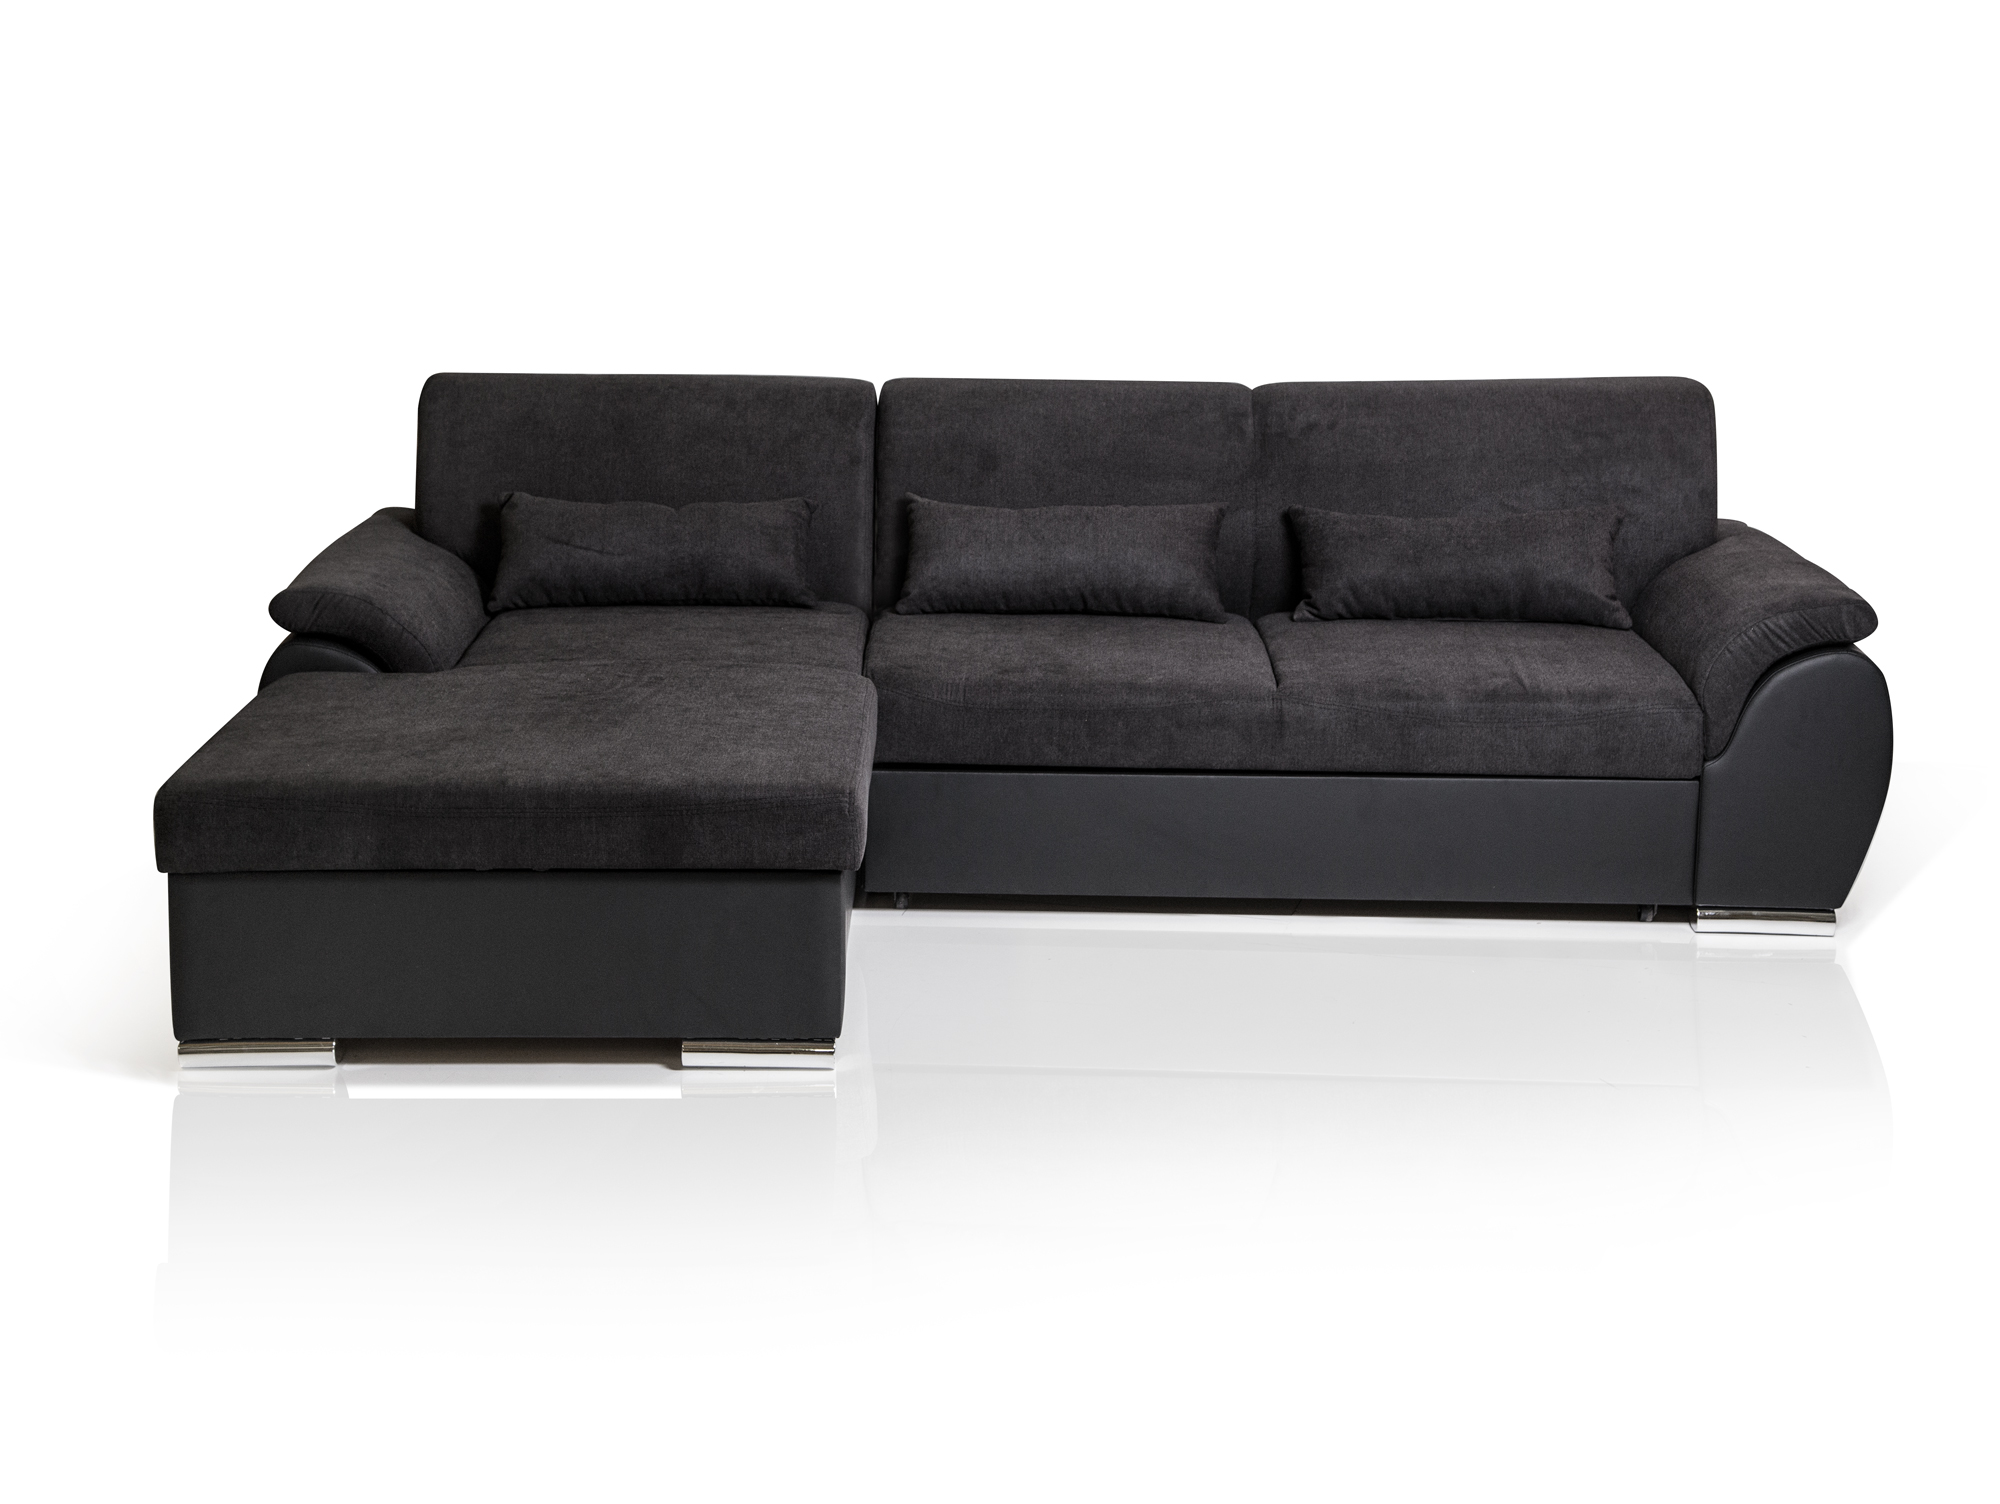 ecksofa mit bettfunktion wien ecksofa daytona mit. Black Bedroom Furniture Sets. Home Design Ideas